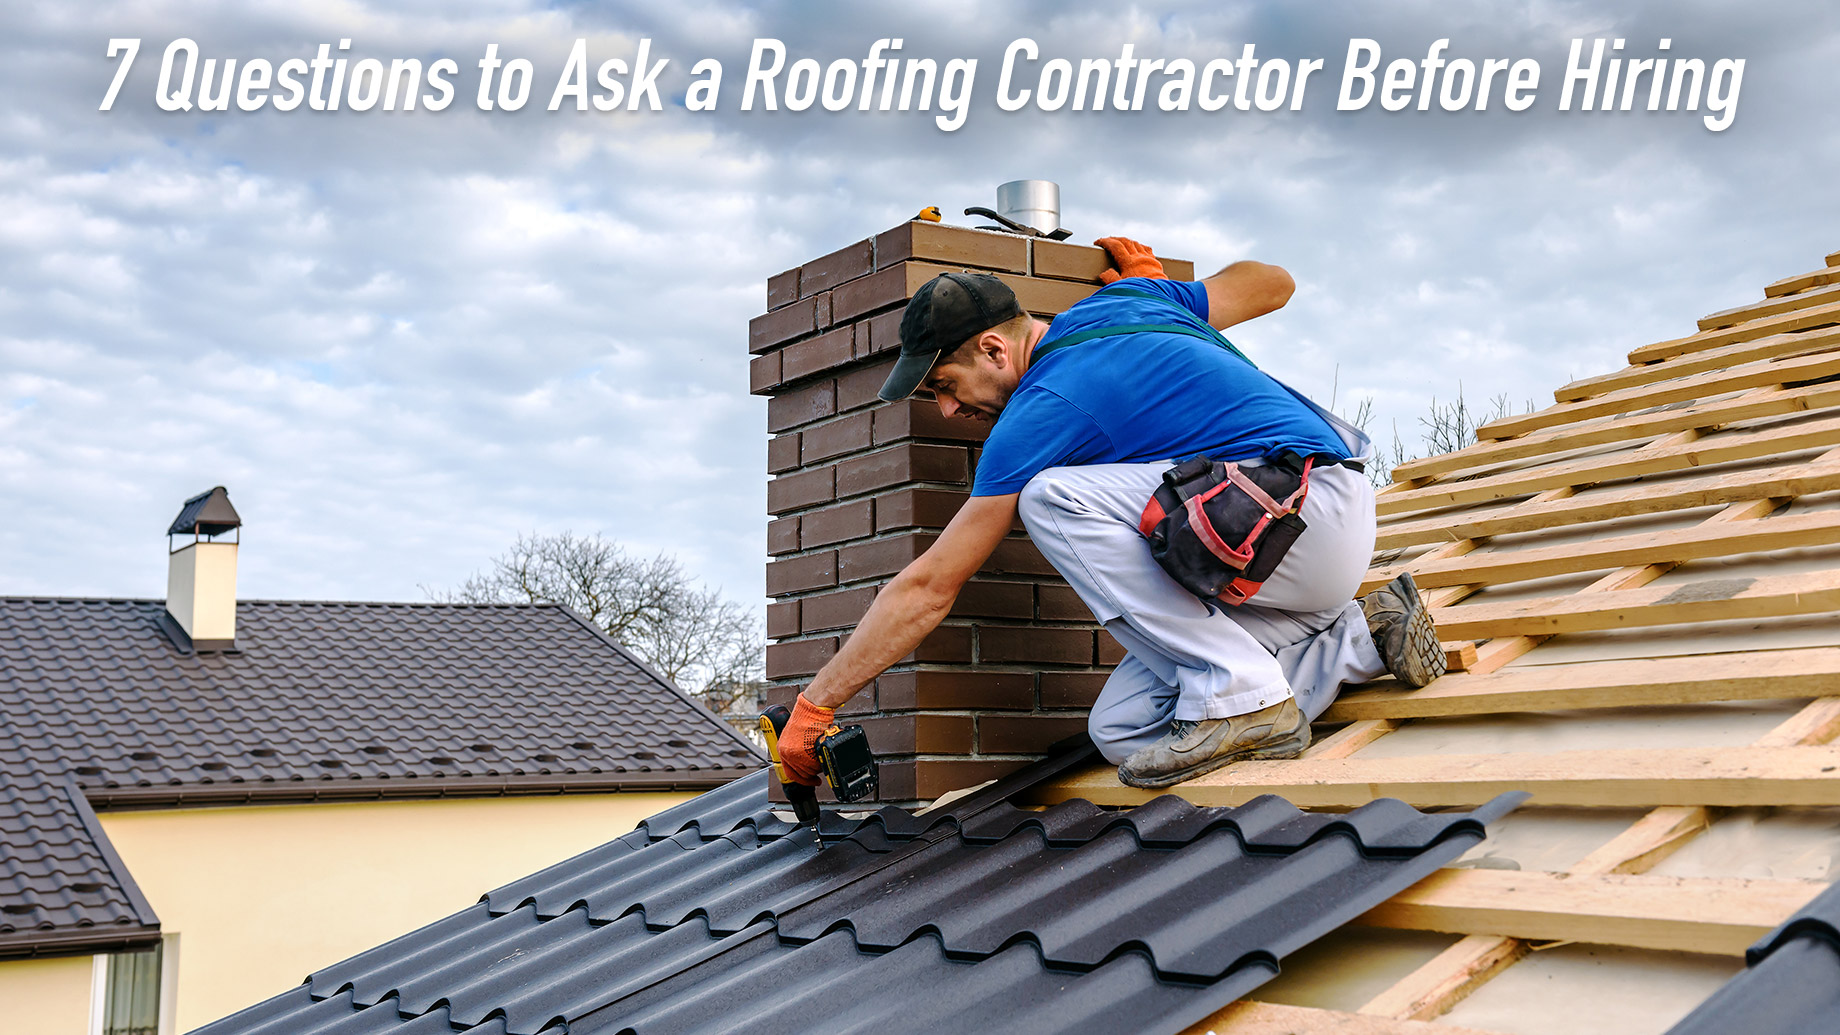 7 Questions to Ask a Roofing Contractor Before Hiring